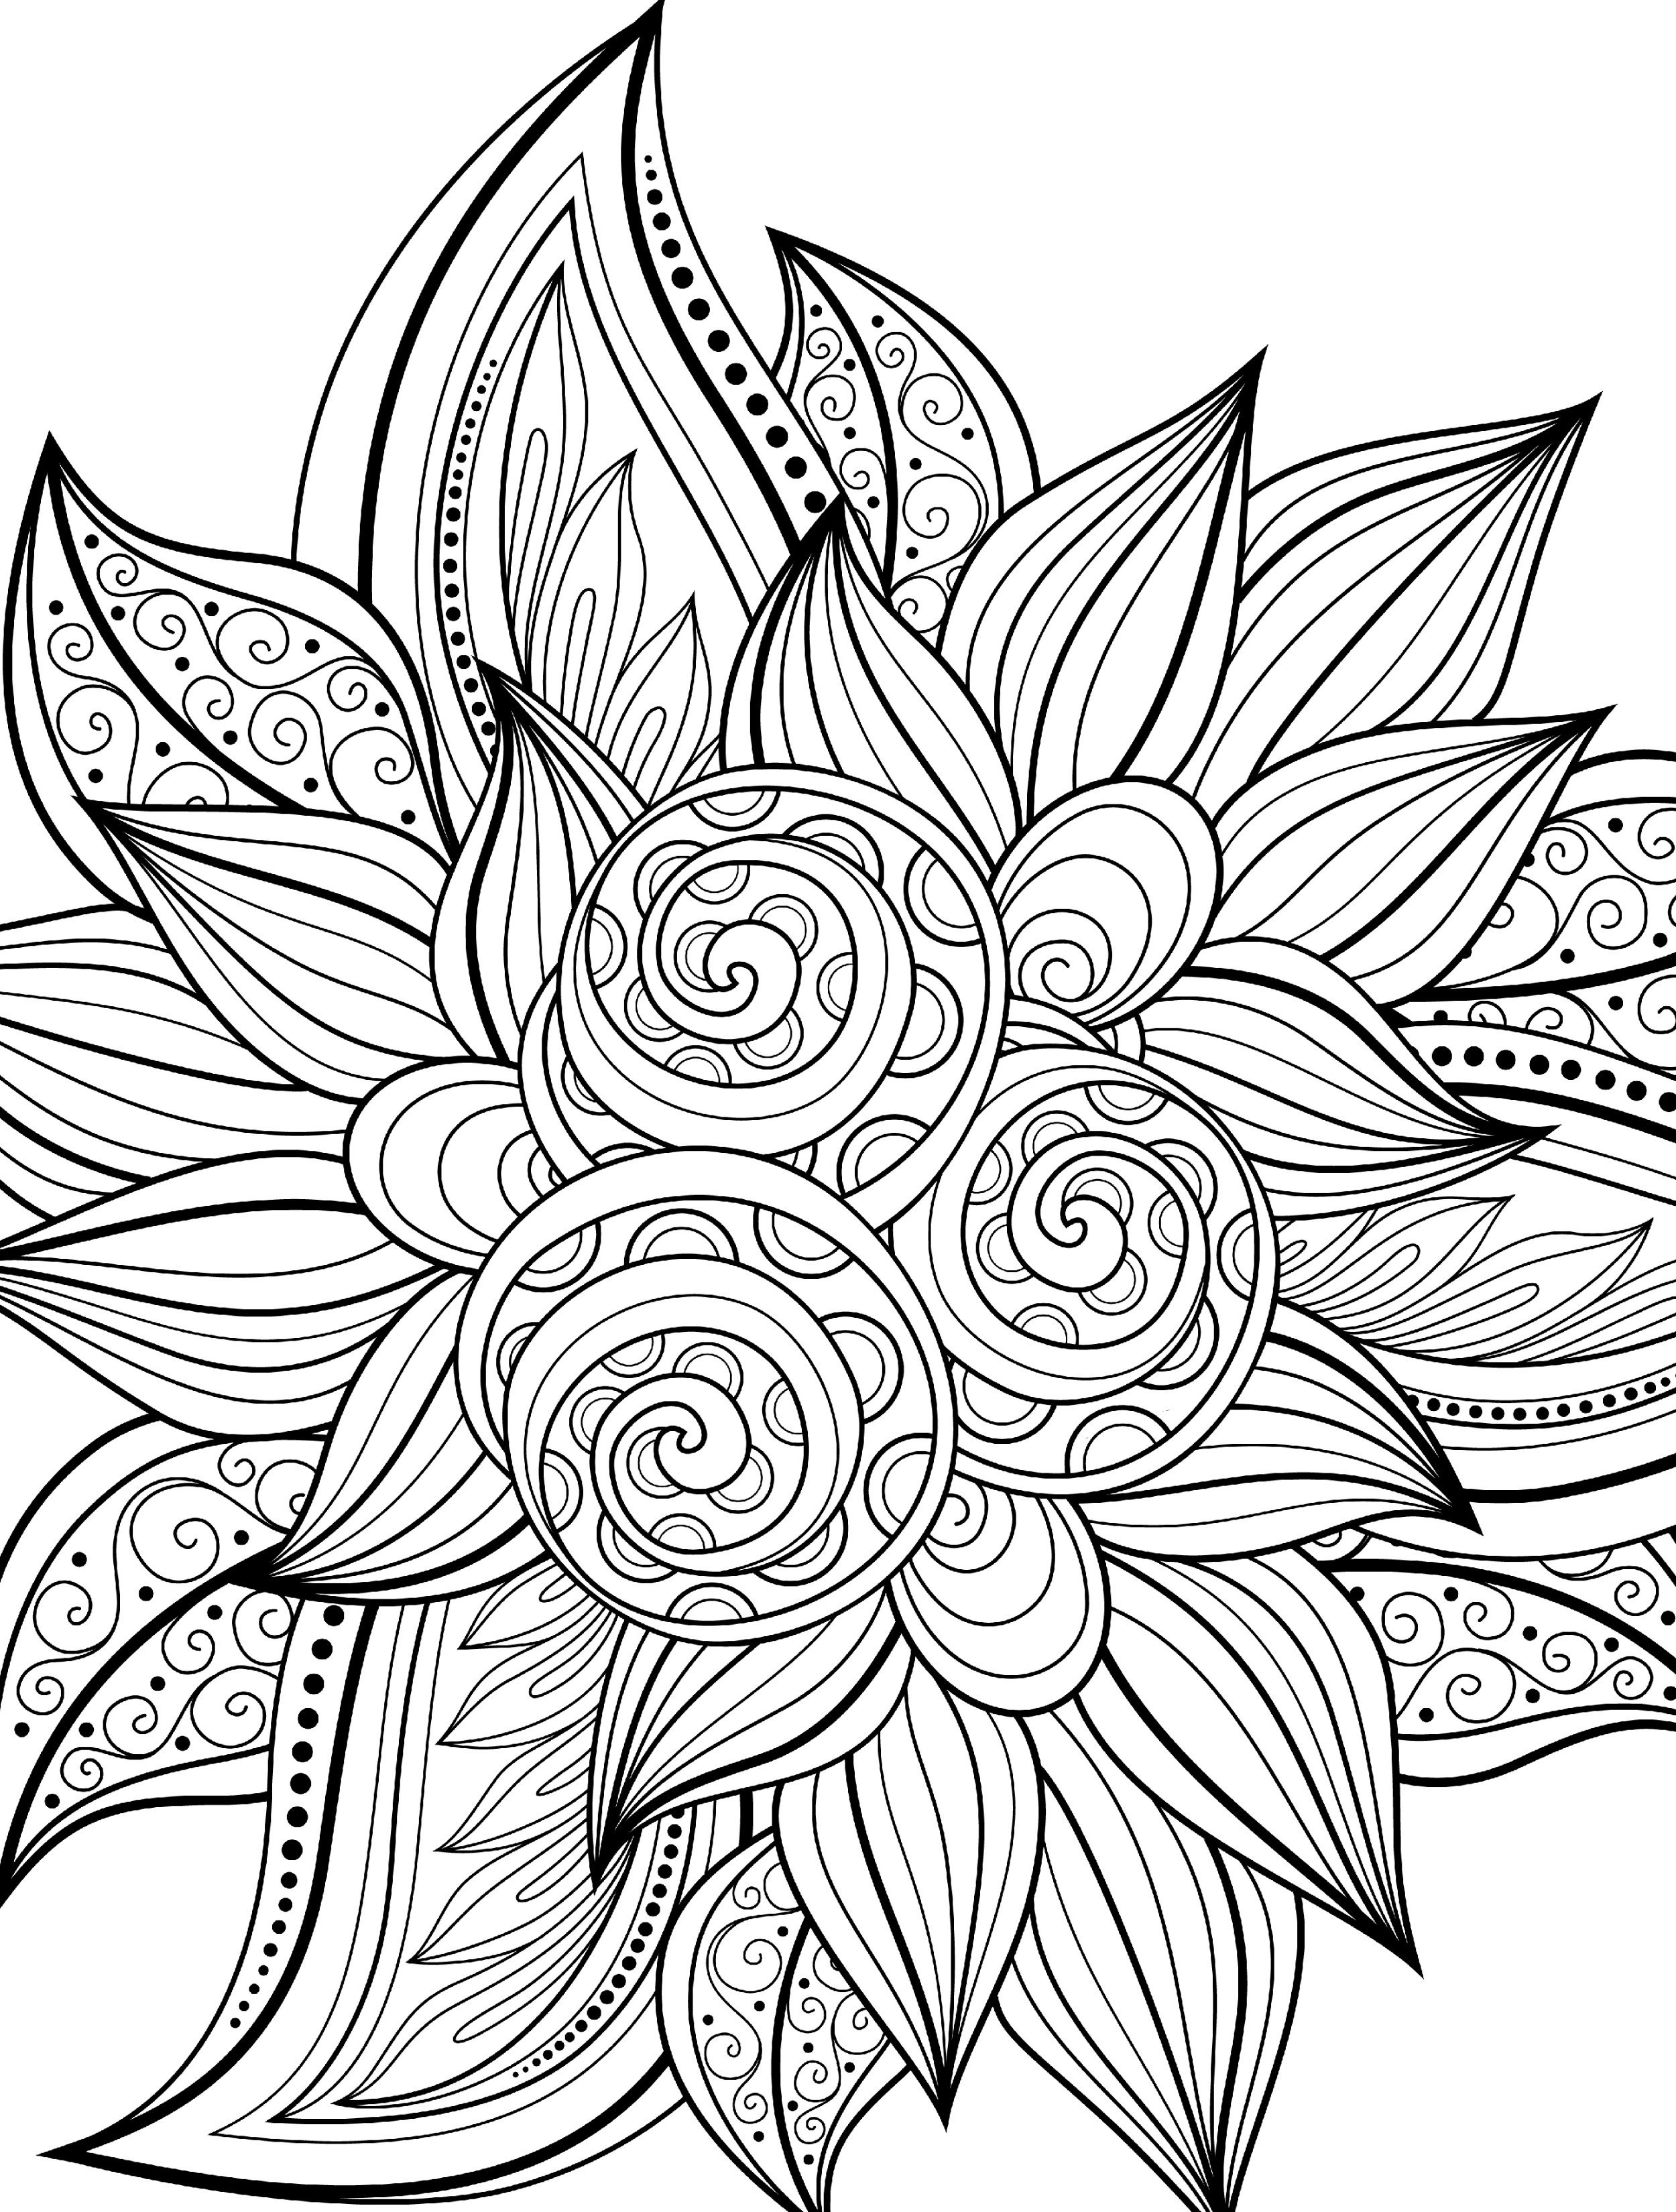 Free Online Coloring Pages For Adults at GetDrawings.com ...